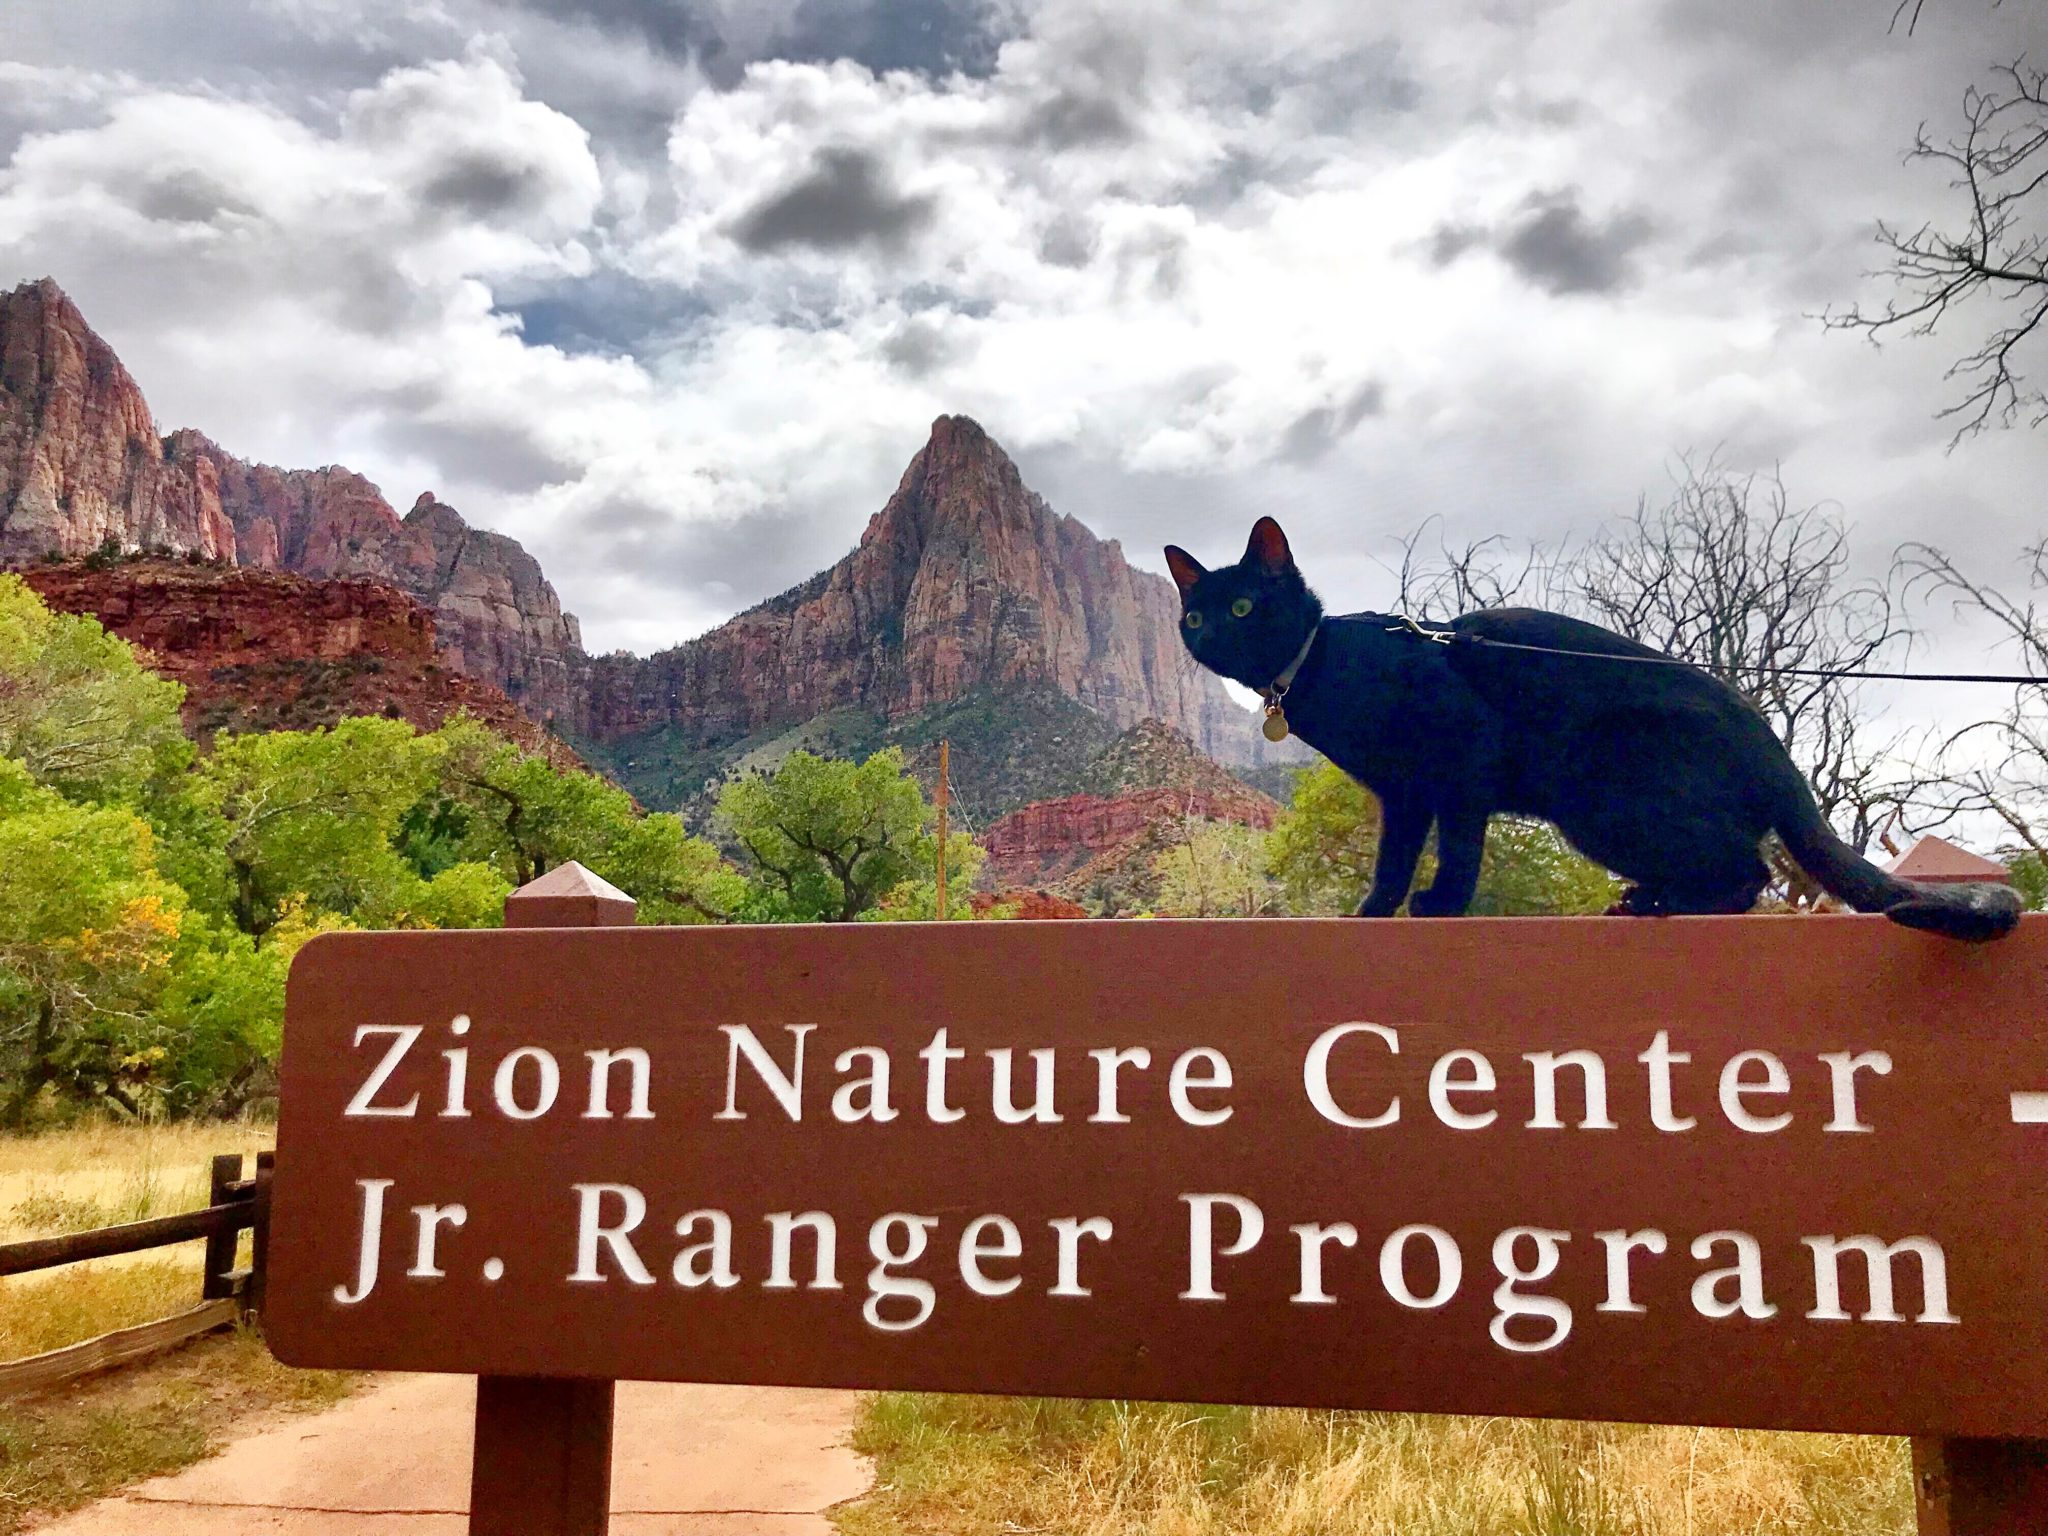 Cash adventure cat explores Zion National Park on a leash